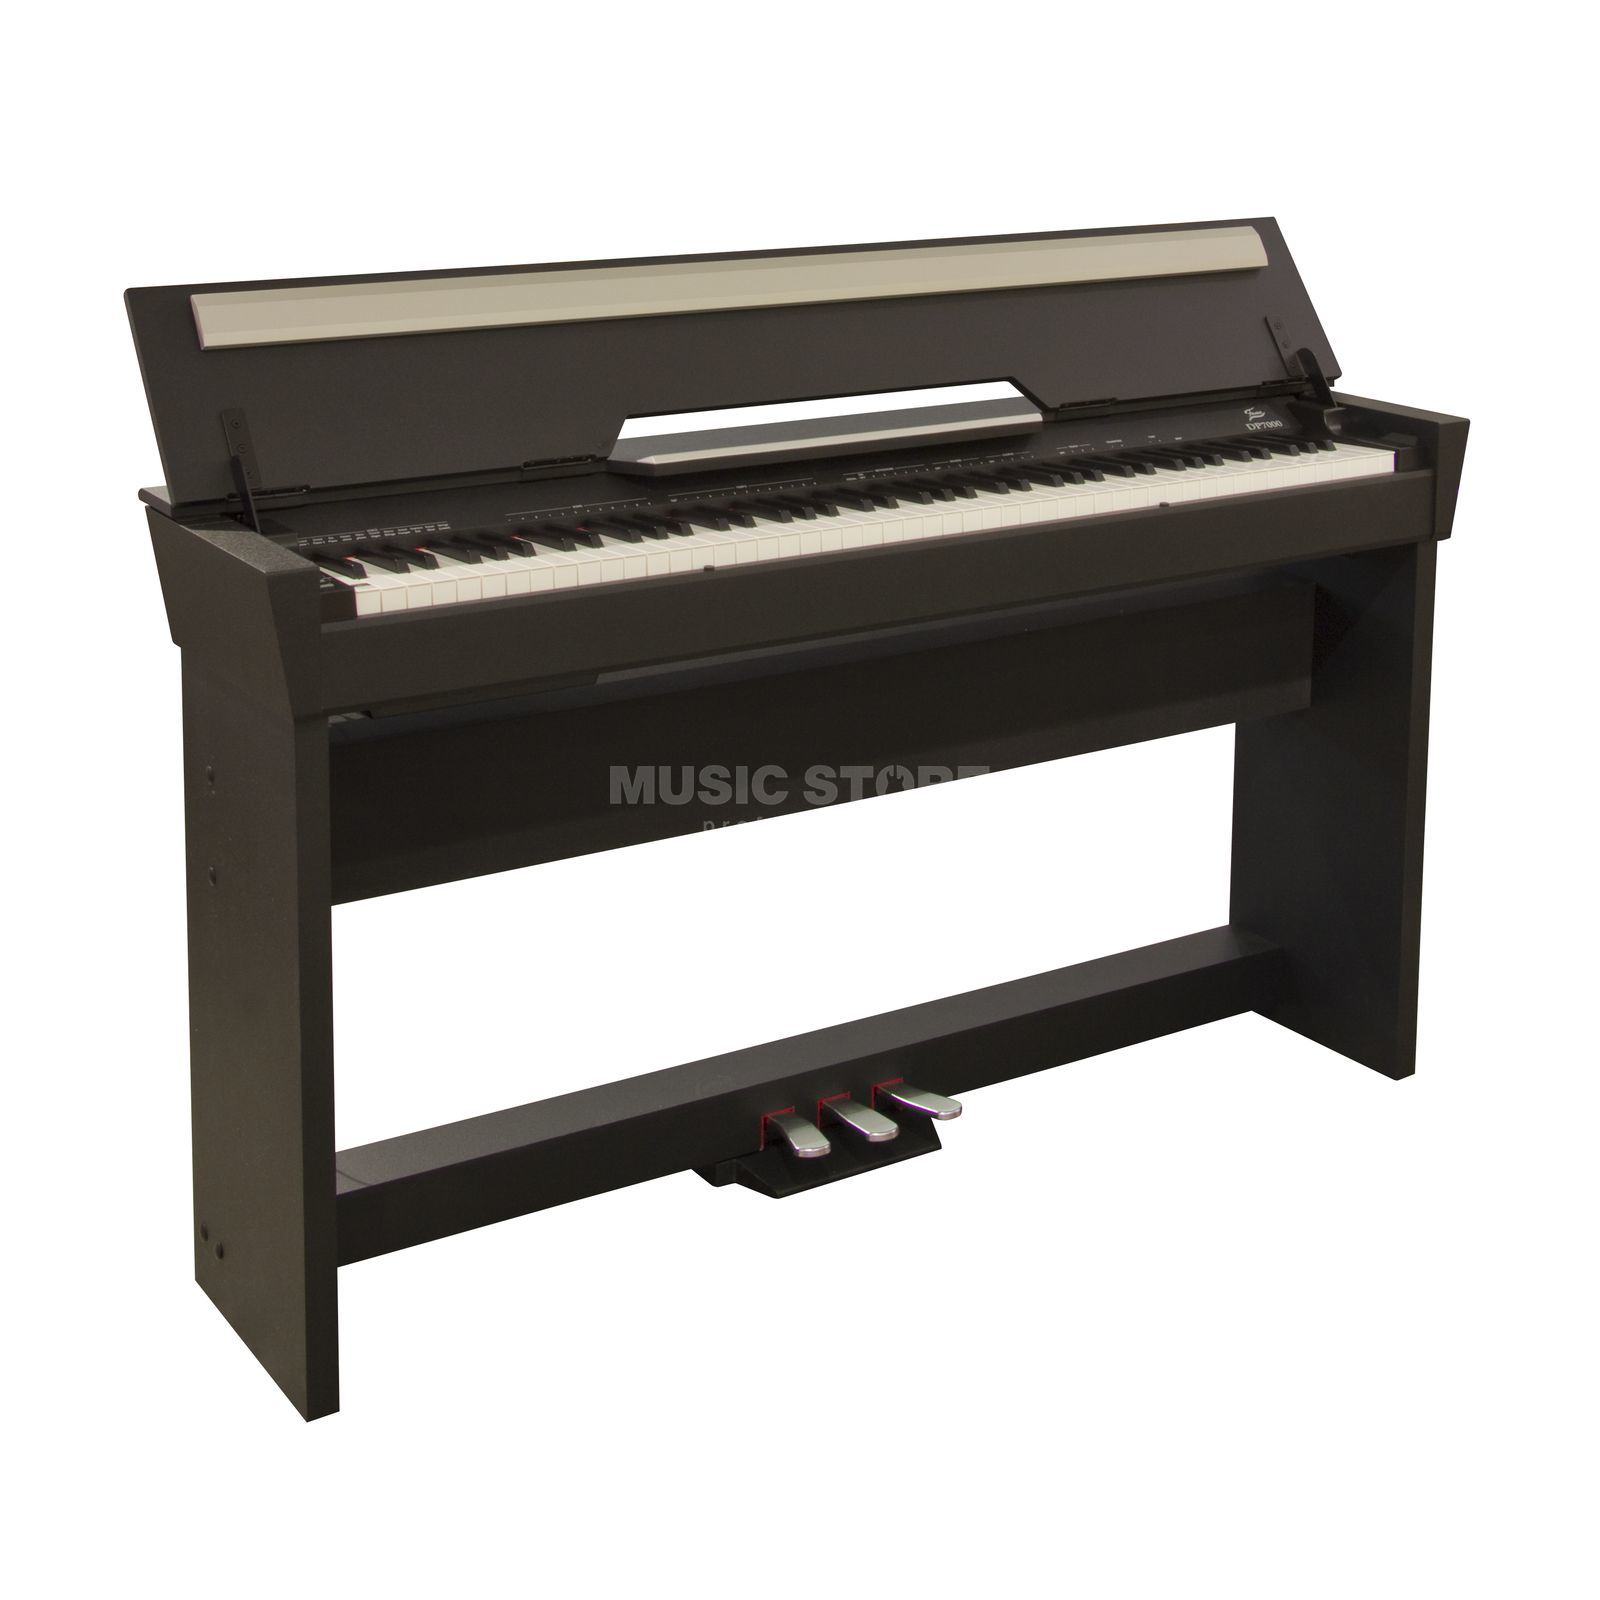 Fame DP-7000 Digital Piano Black Produktbillede